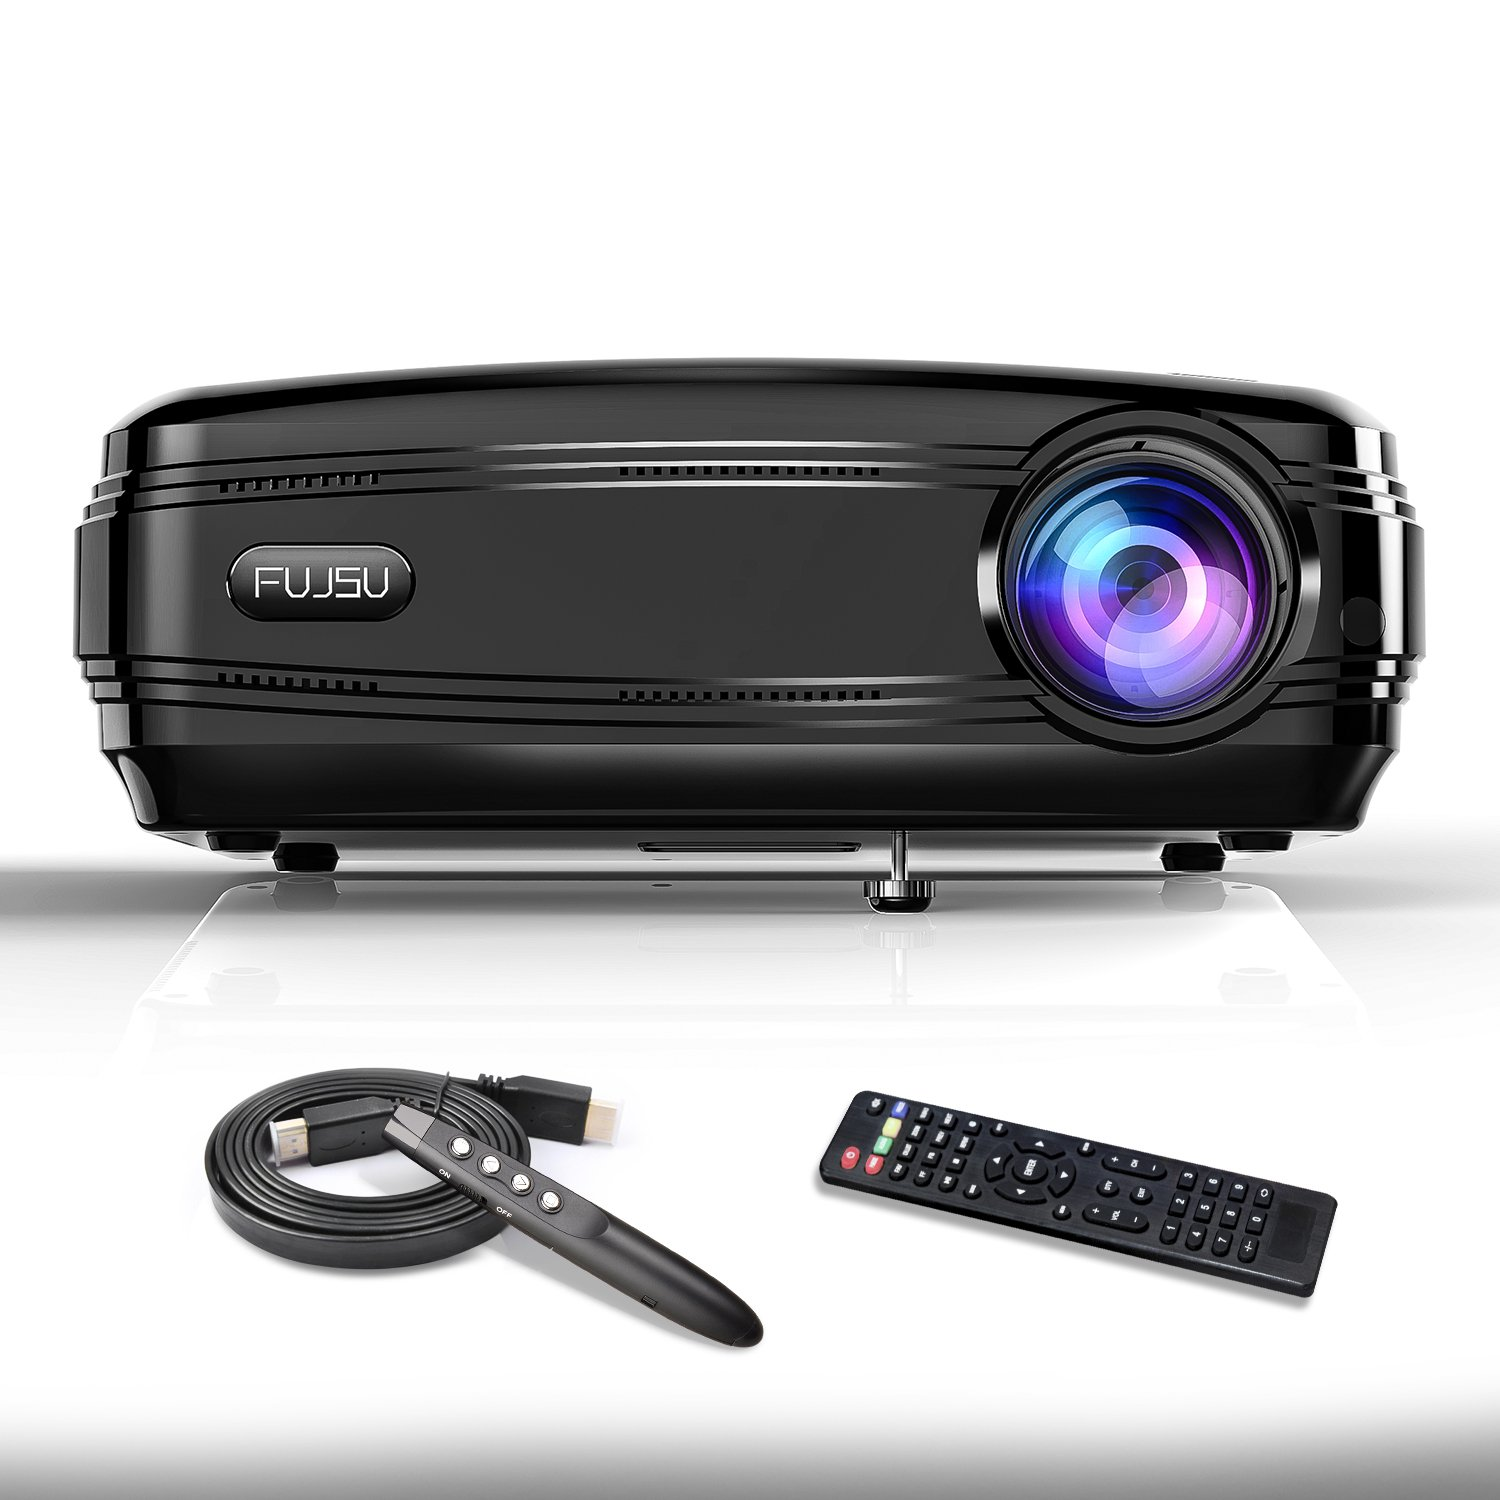 Video Projector,FUJSU 3300 Lumens Full HD 1080P LED Business Projector with Wireless PowerPoint Pen LCD Overhead Projectors for Home Theater HDMI USB VGA SD Card AV for iPhone Android Laptop TV Game